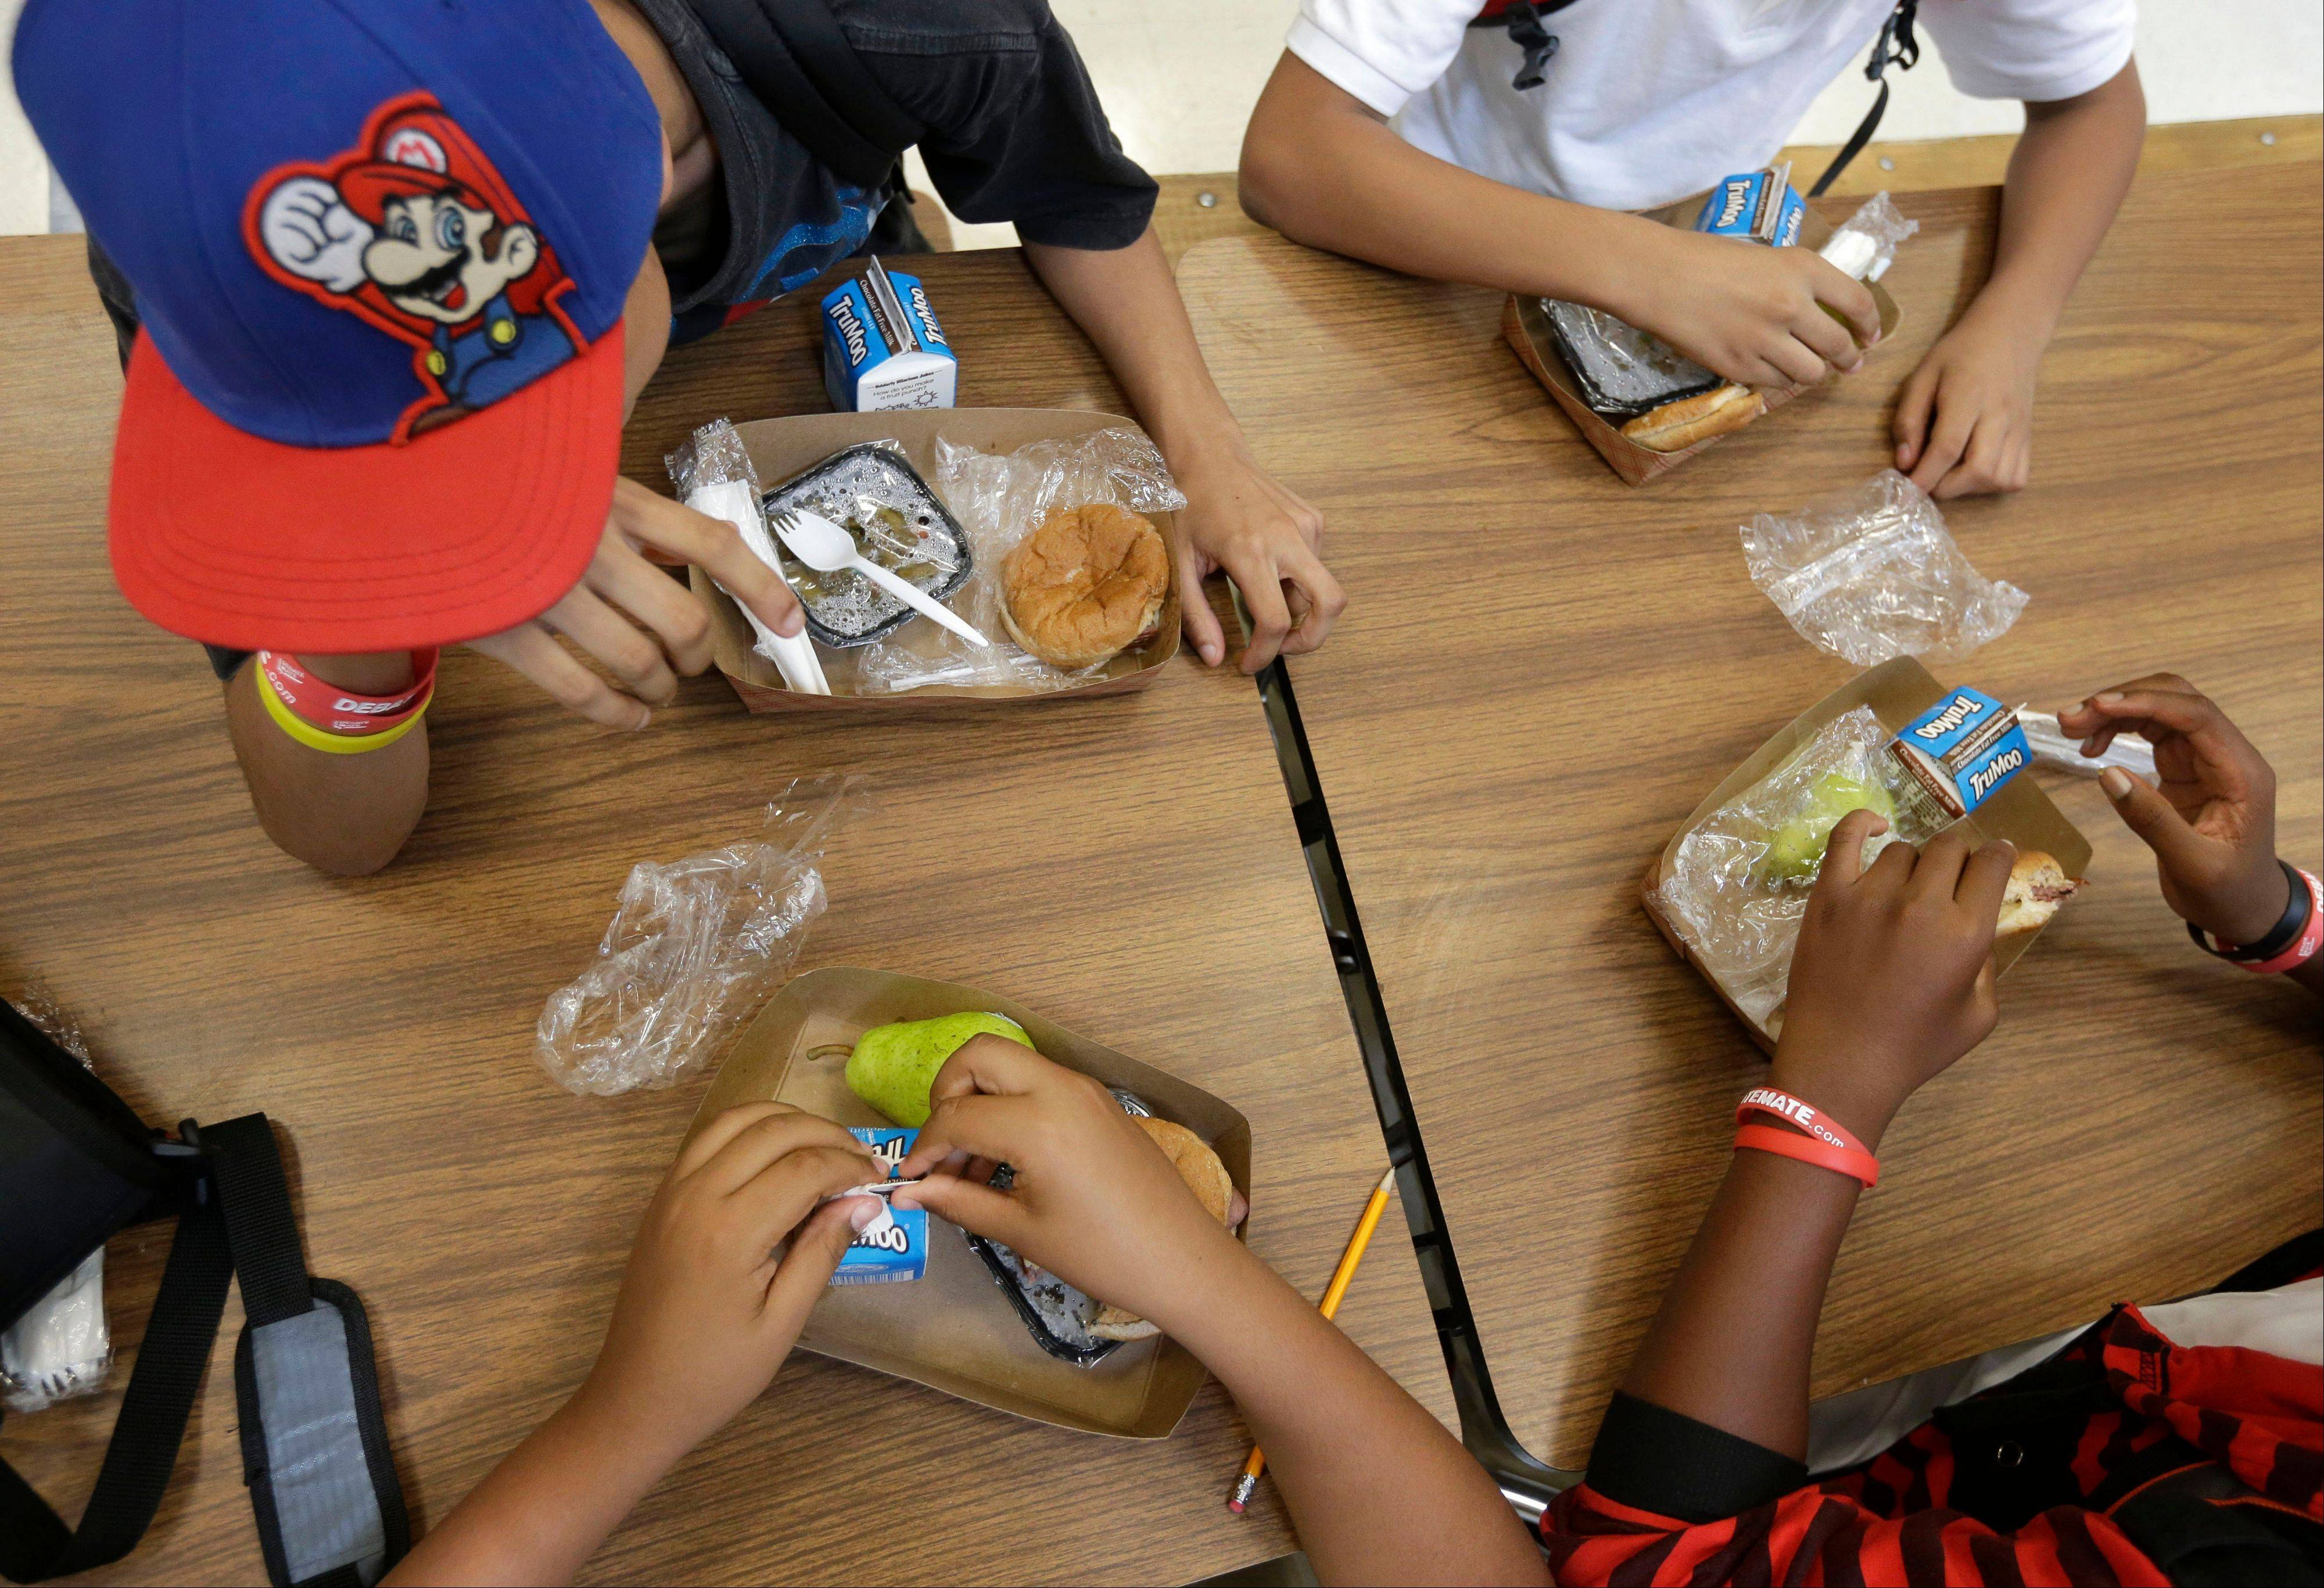 Students at the Maurice J. Tobin K-8 School in Boston's Roxbury neighborhood eat free lunches consisting of a sandwich with meat, a vegetable dish, a piece of fruit, and milk. The Agriculture Department says that around half a percent of schools _ or 524 schools out of around 100,000 _ have dropped out of the federally-subsidized national school lunch program since the government put new standards for healthier foods in place last year.